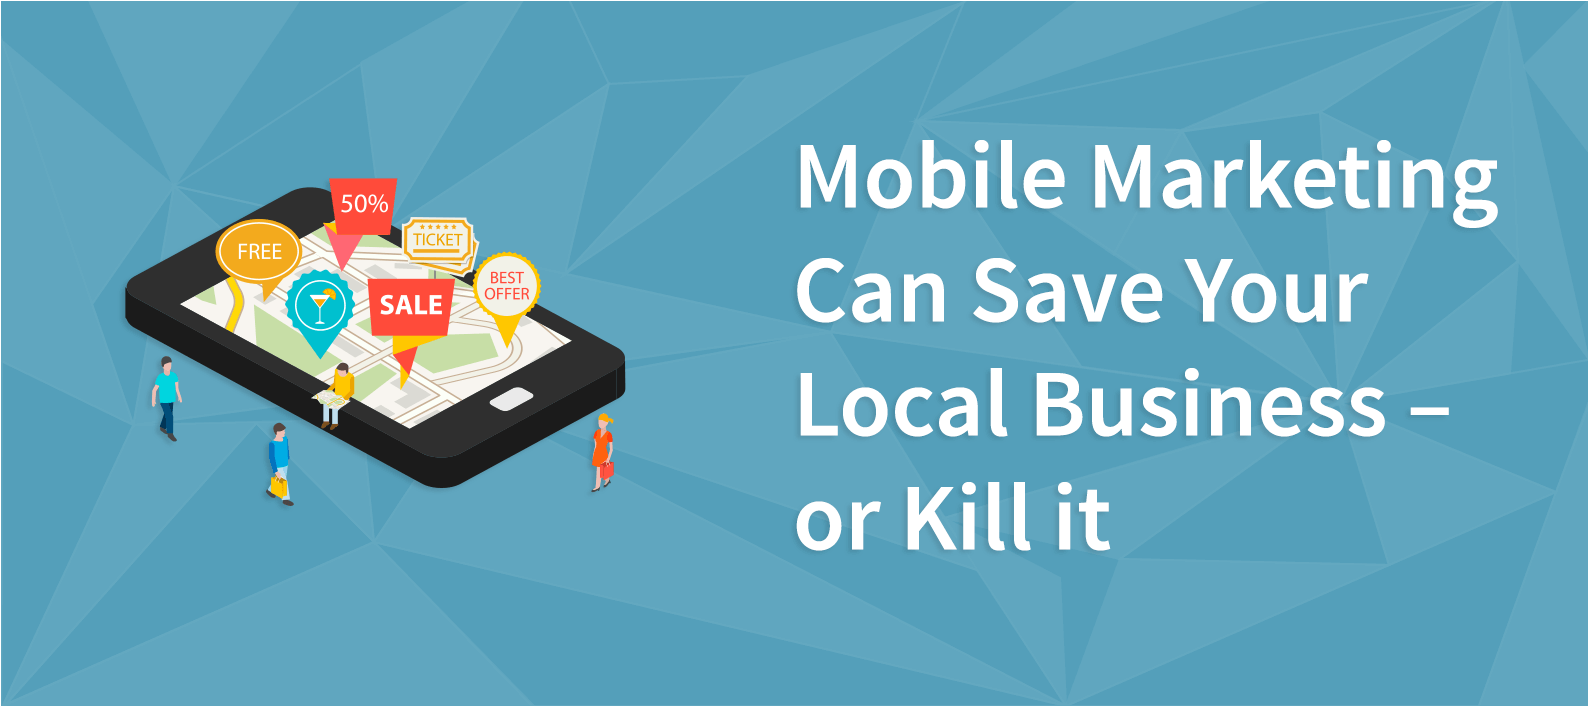 Mobile Marketing Can Save Your Local Business - or Kill It